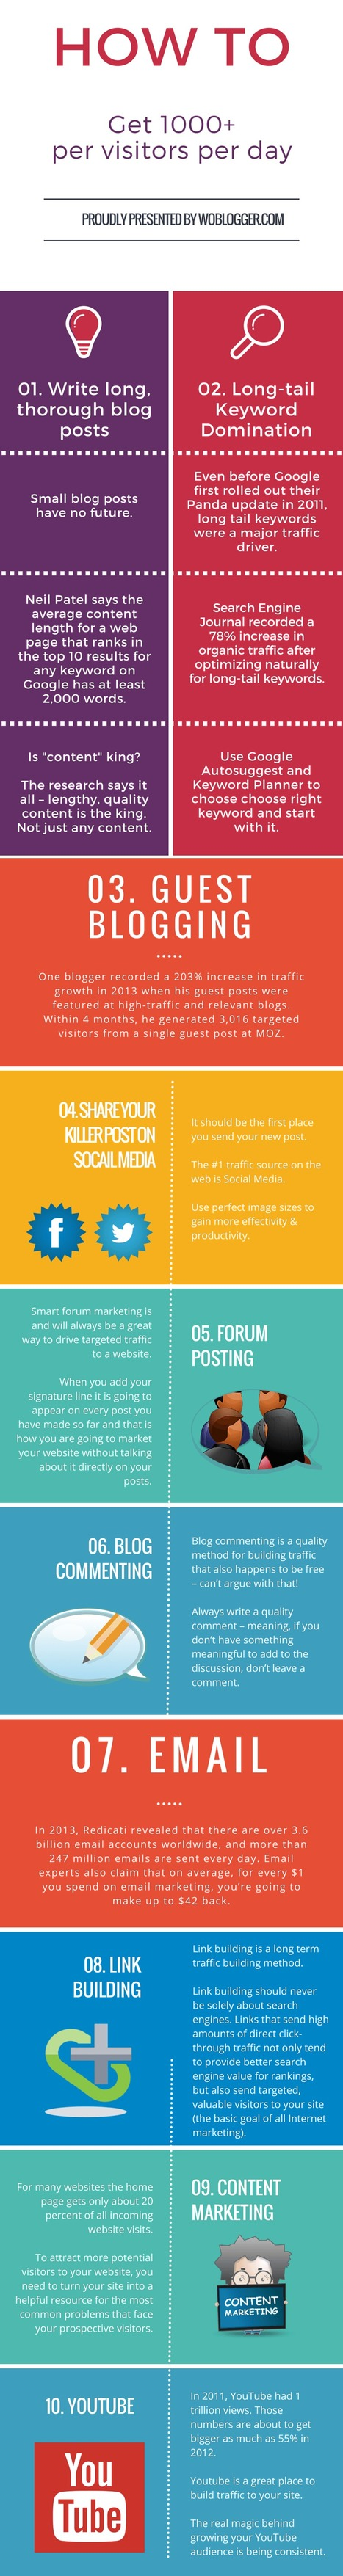 10 Tips to Get 1000+ Visitors per Day to Your Website #infographic | MarketingHits | Scoop.it